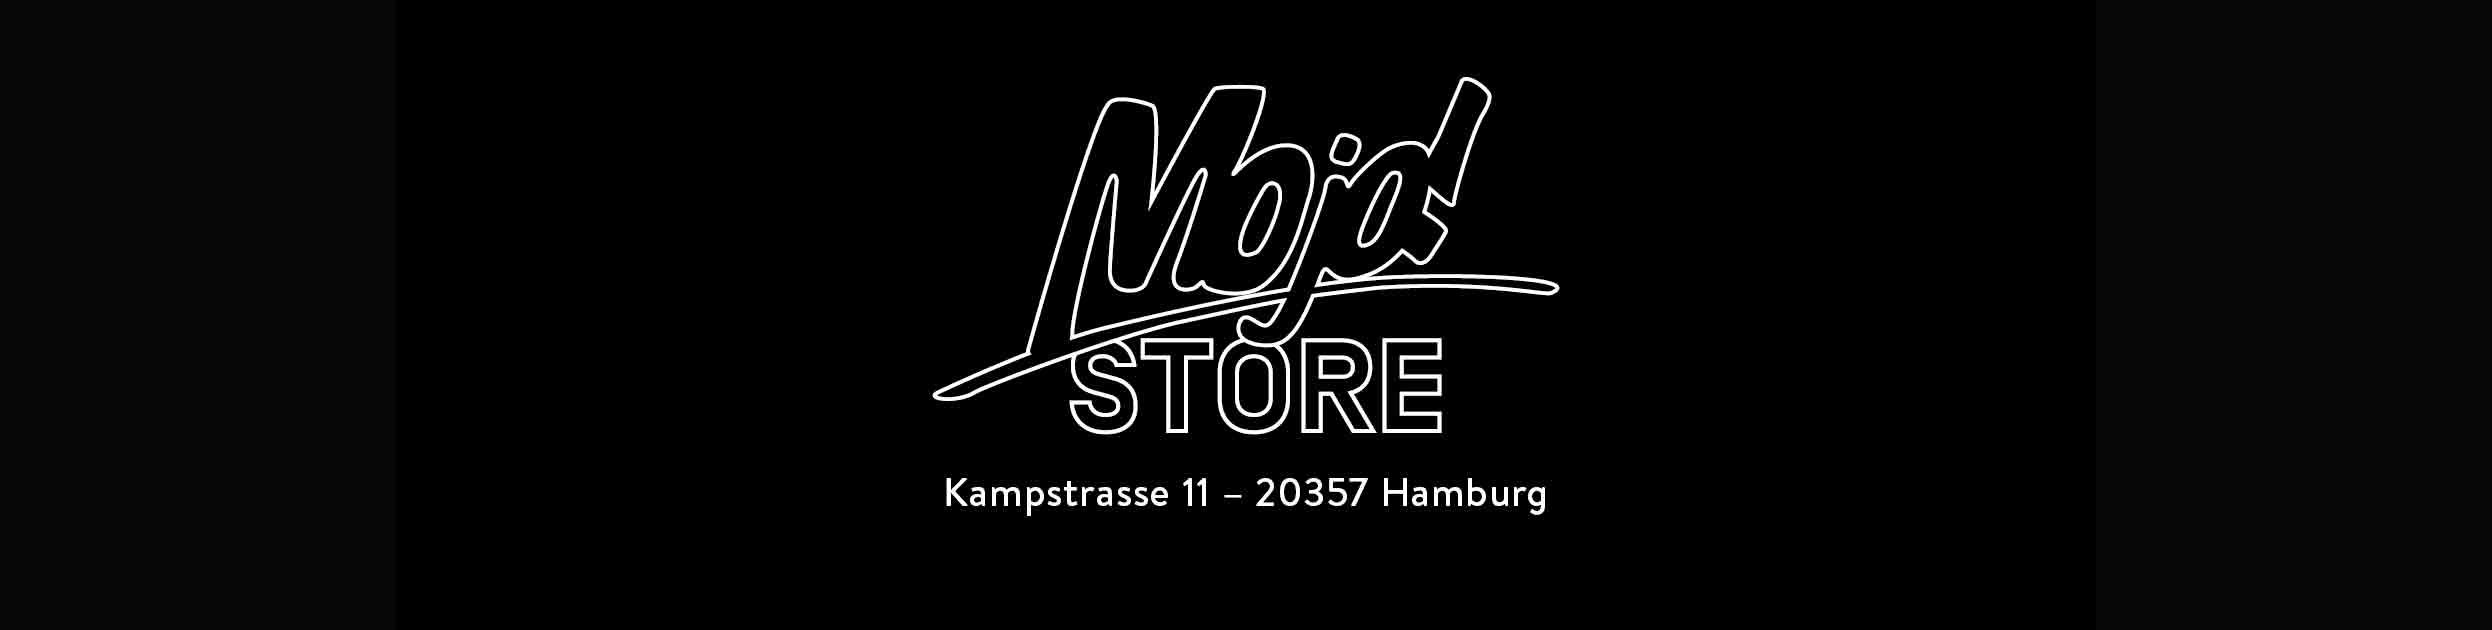 Mojo-Store-Snowboarding-Hamburg-Limited-Streetwear-Made-in-Europe-Fairtrade